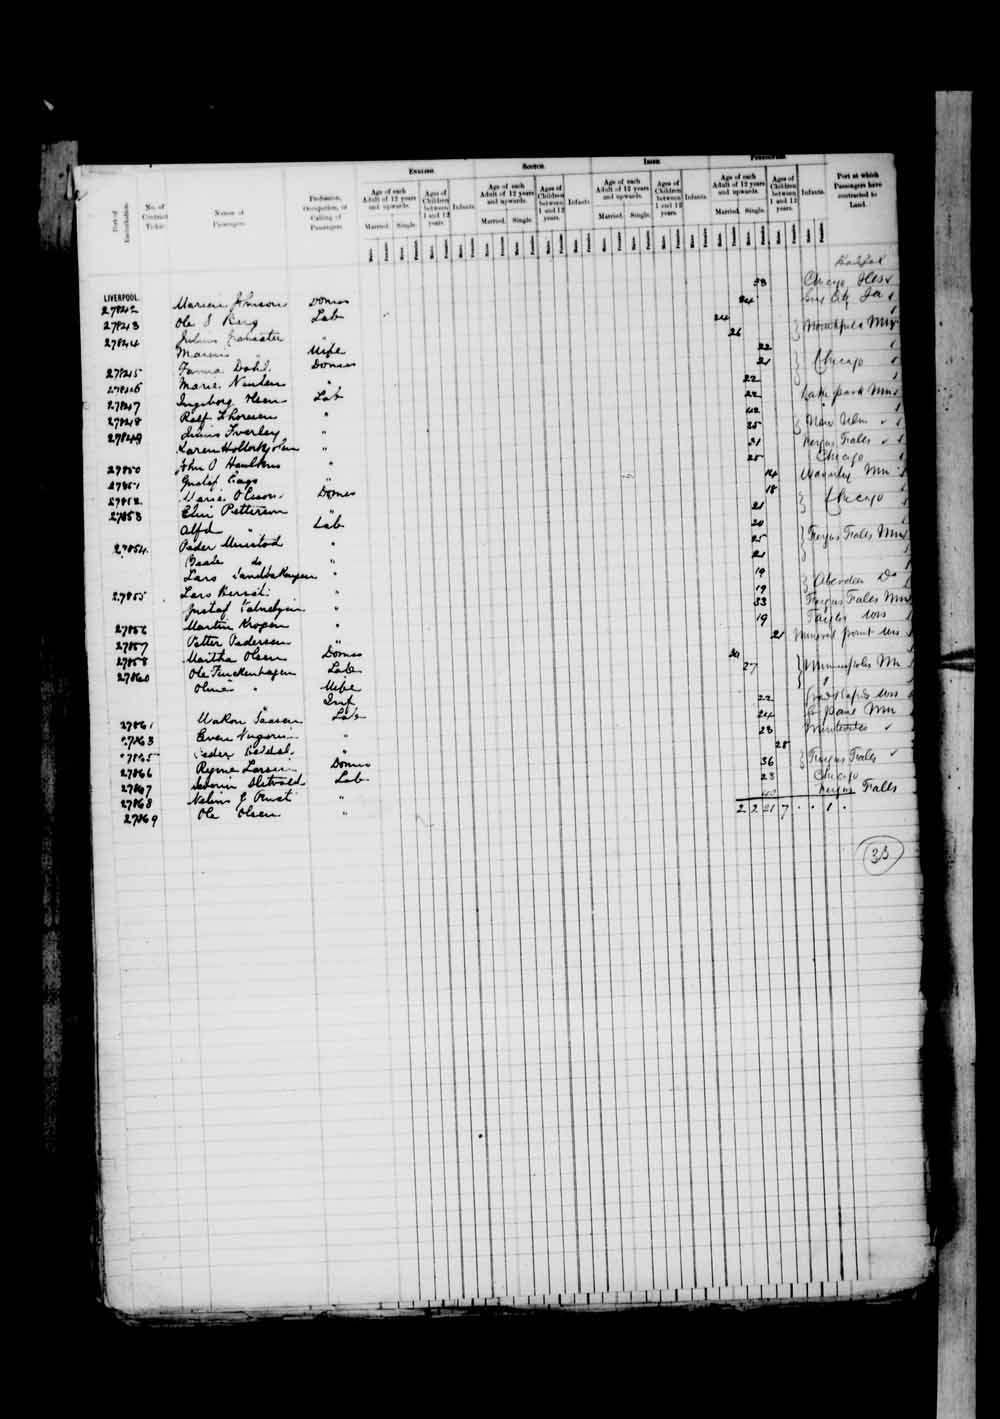 Digitized page of Passenger Lists for Image No.: e003674936